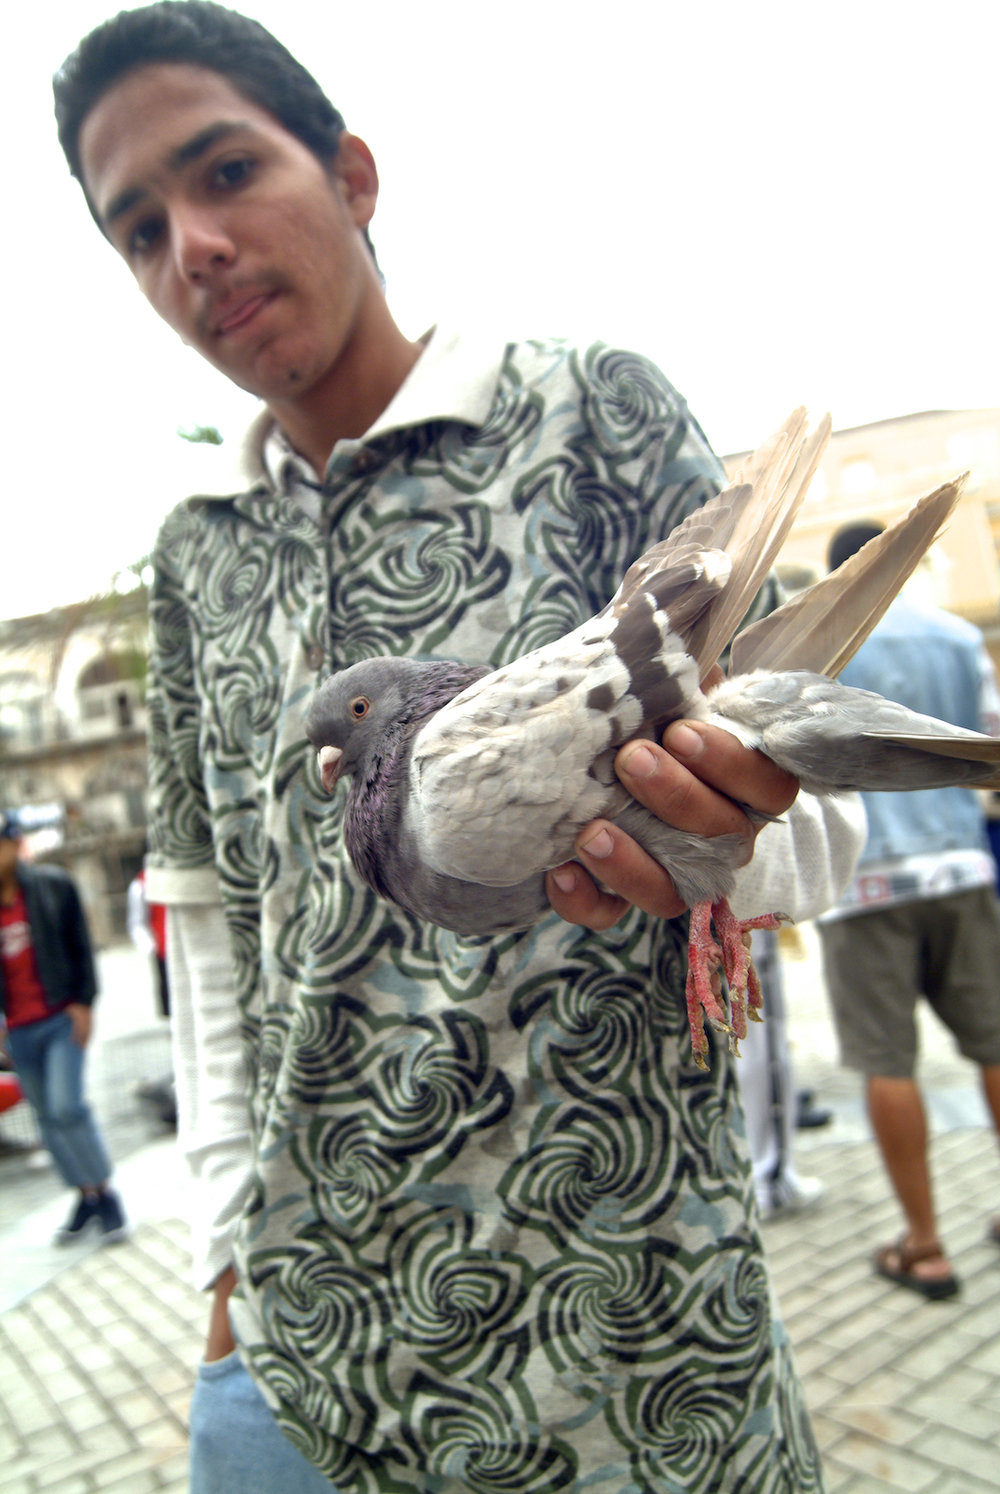 a boy shows his racing pigeon in Havana, Cuba.  Image by New Orleans based travel photographer, Marc Pagani